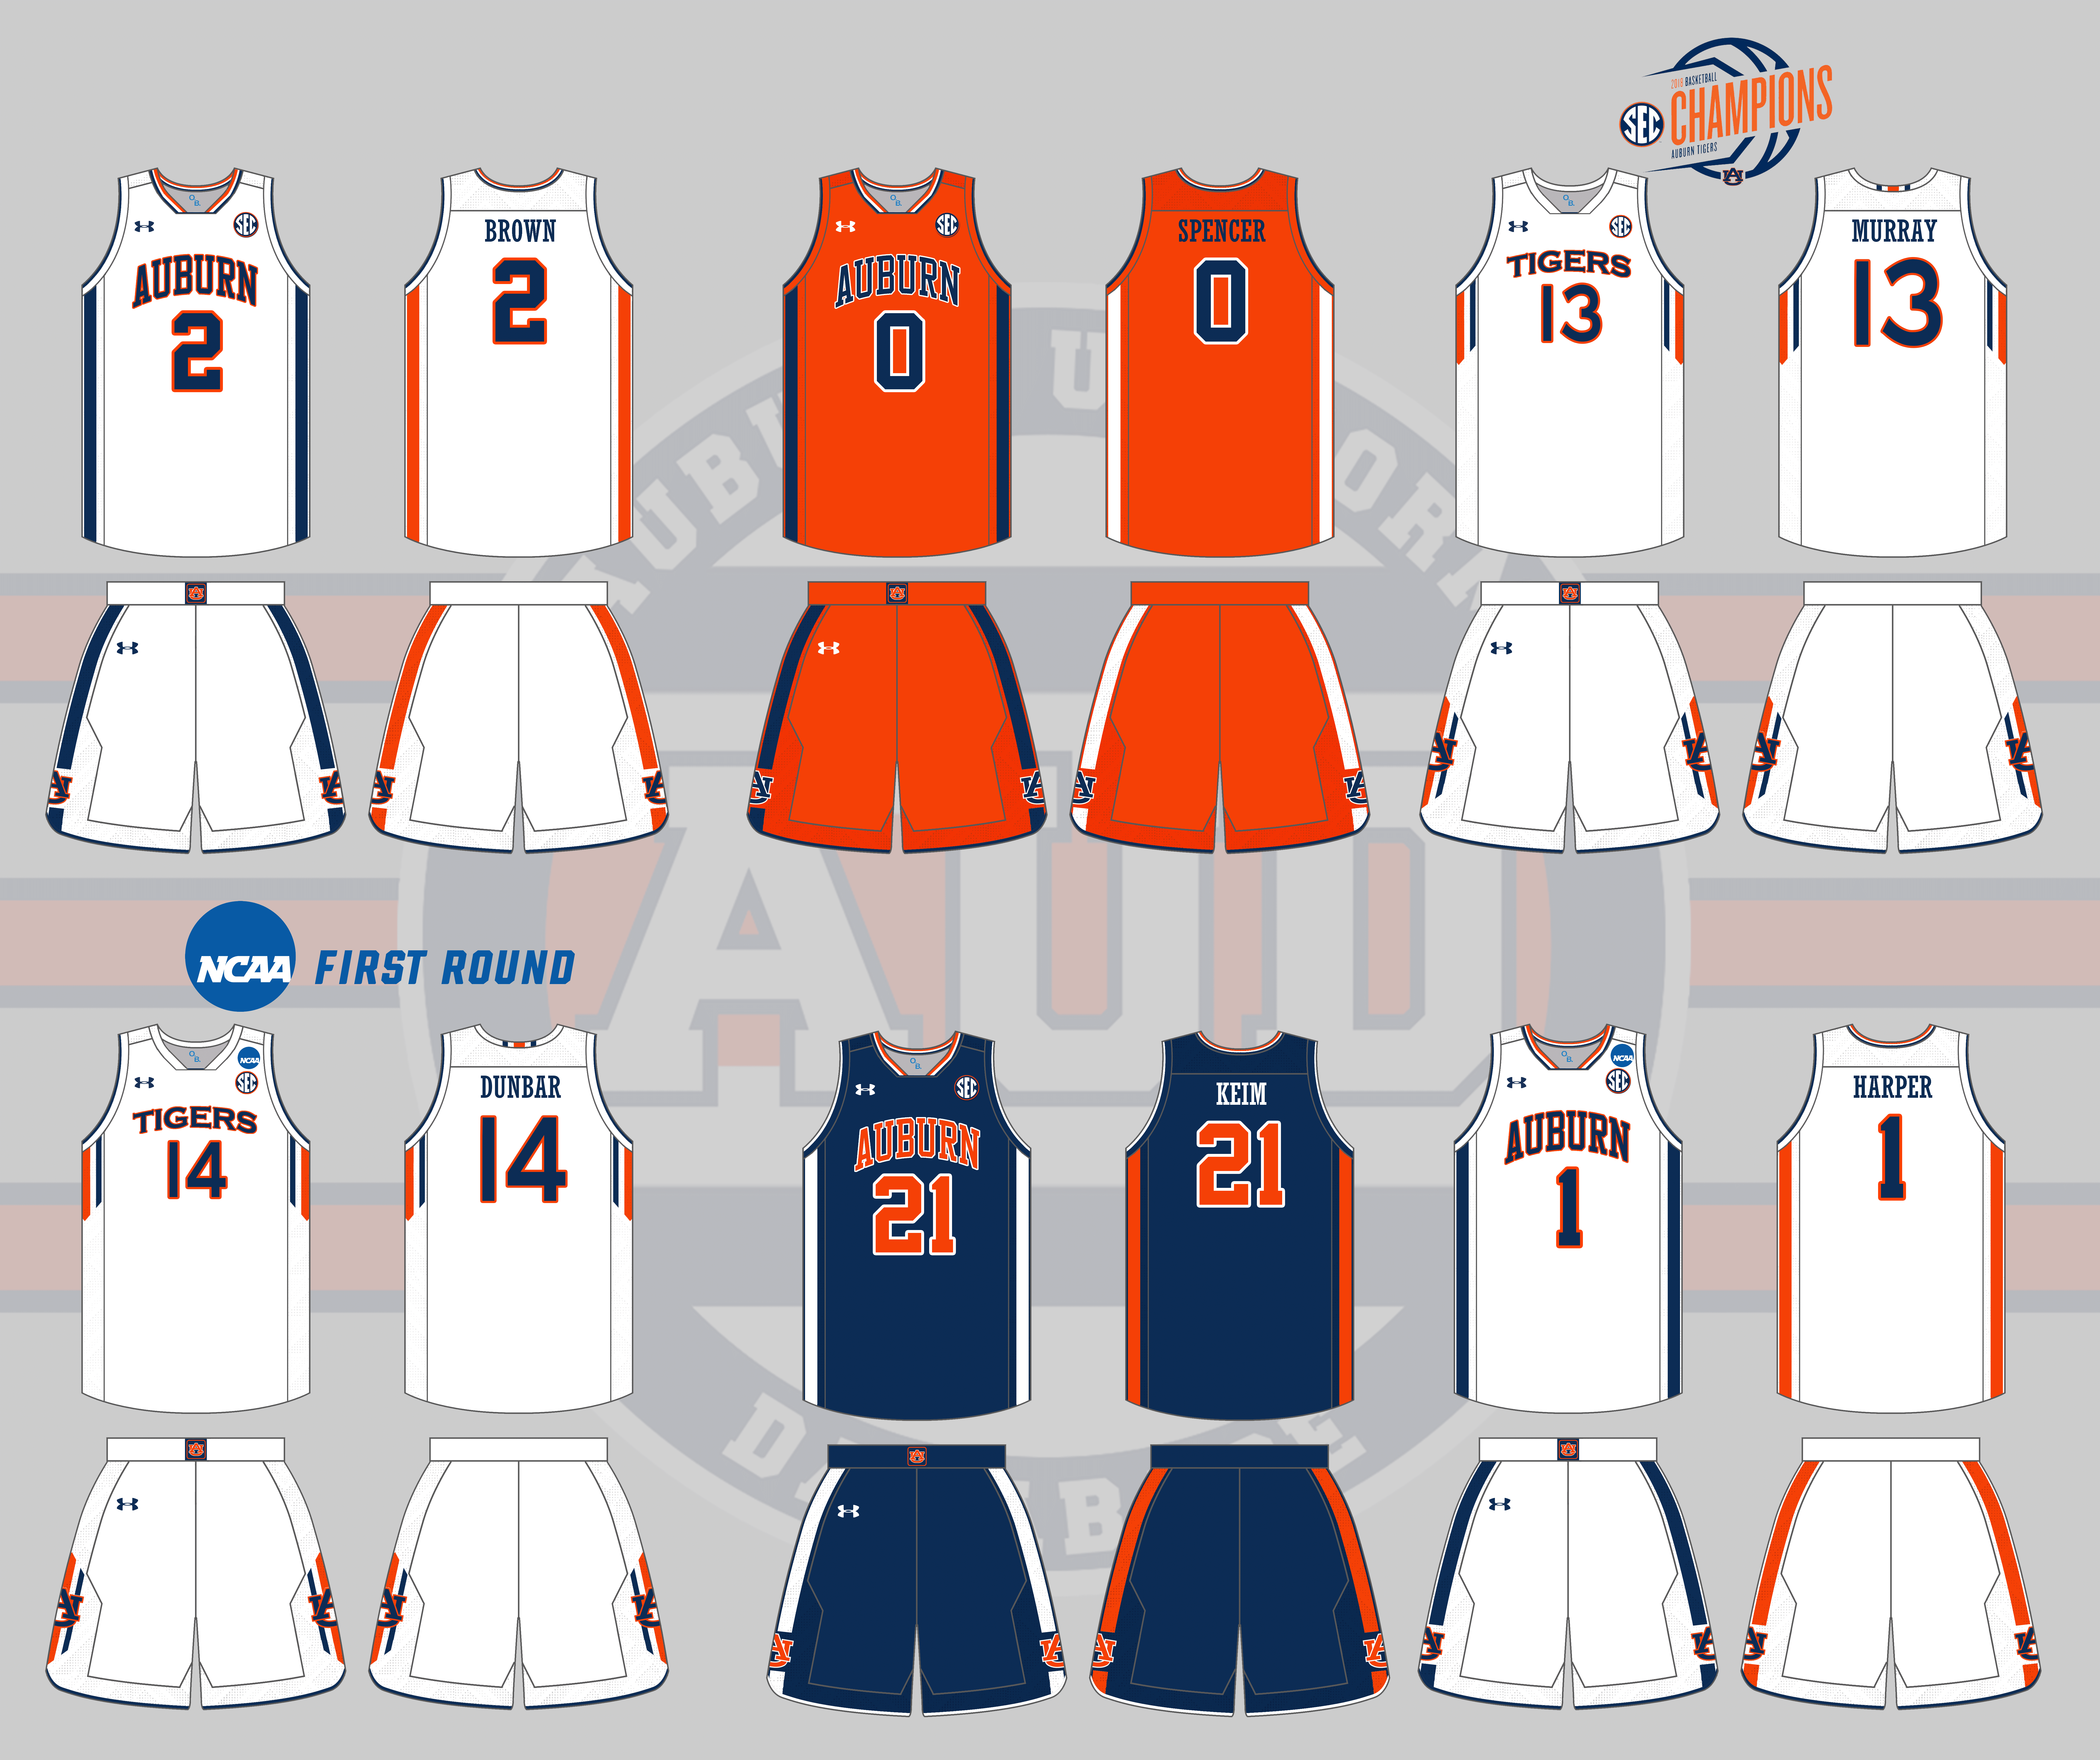 Milestones From 2017 Into 2018: Auburn Tigers Men's Basketball Uniform History